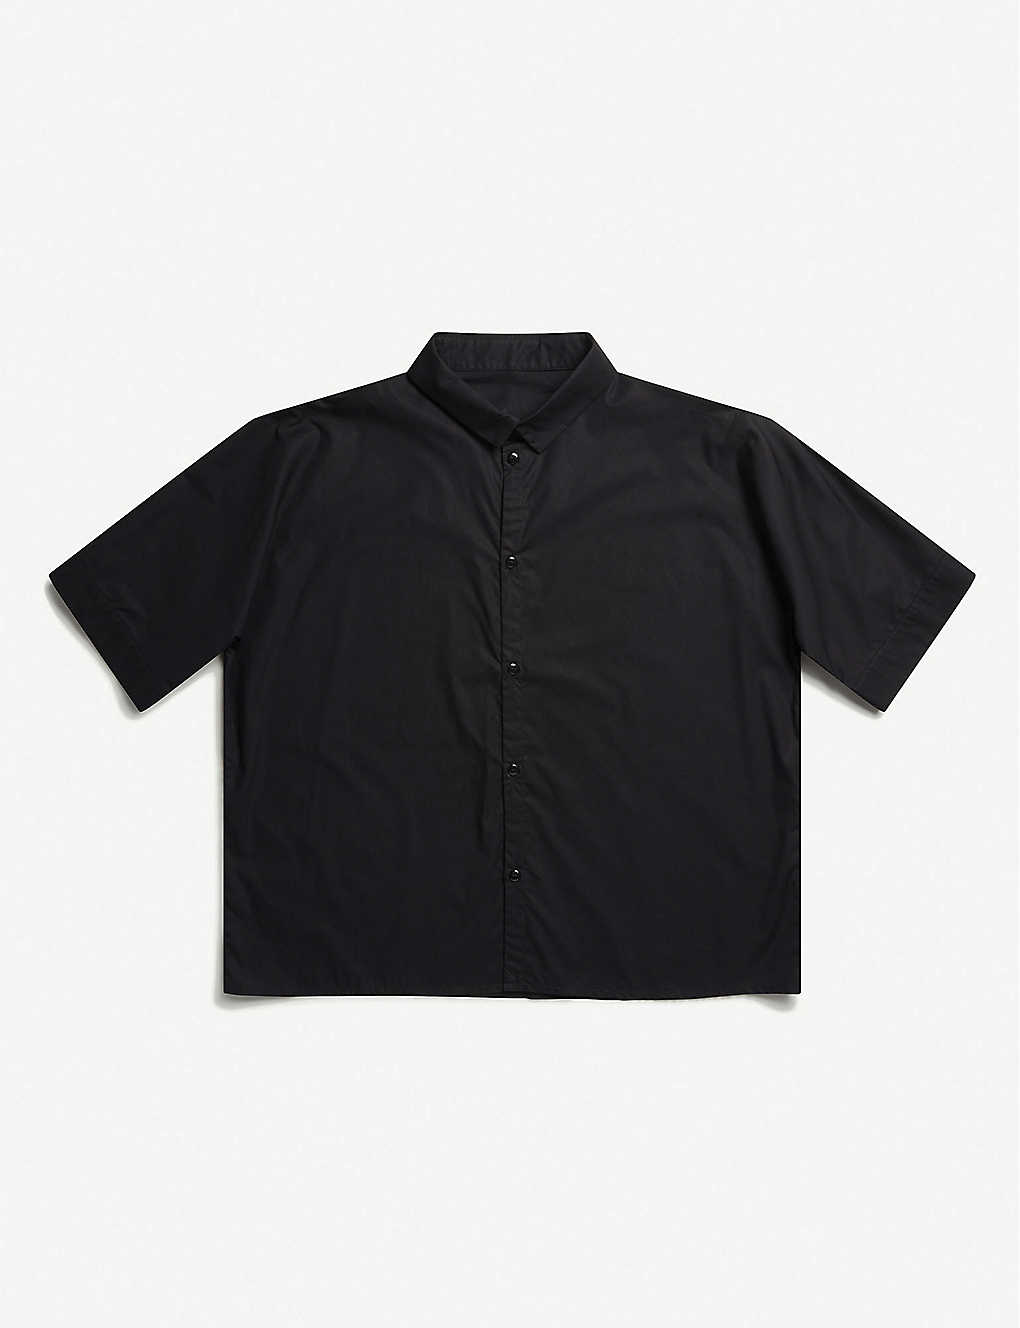 TOOGOOD: The Gardener cropped cotton shirt